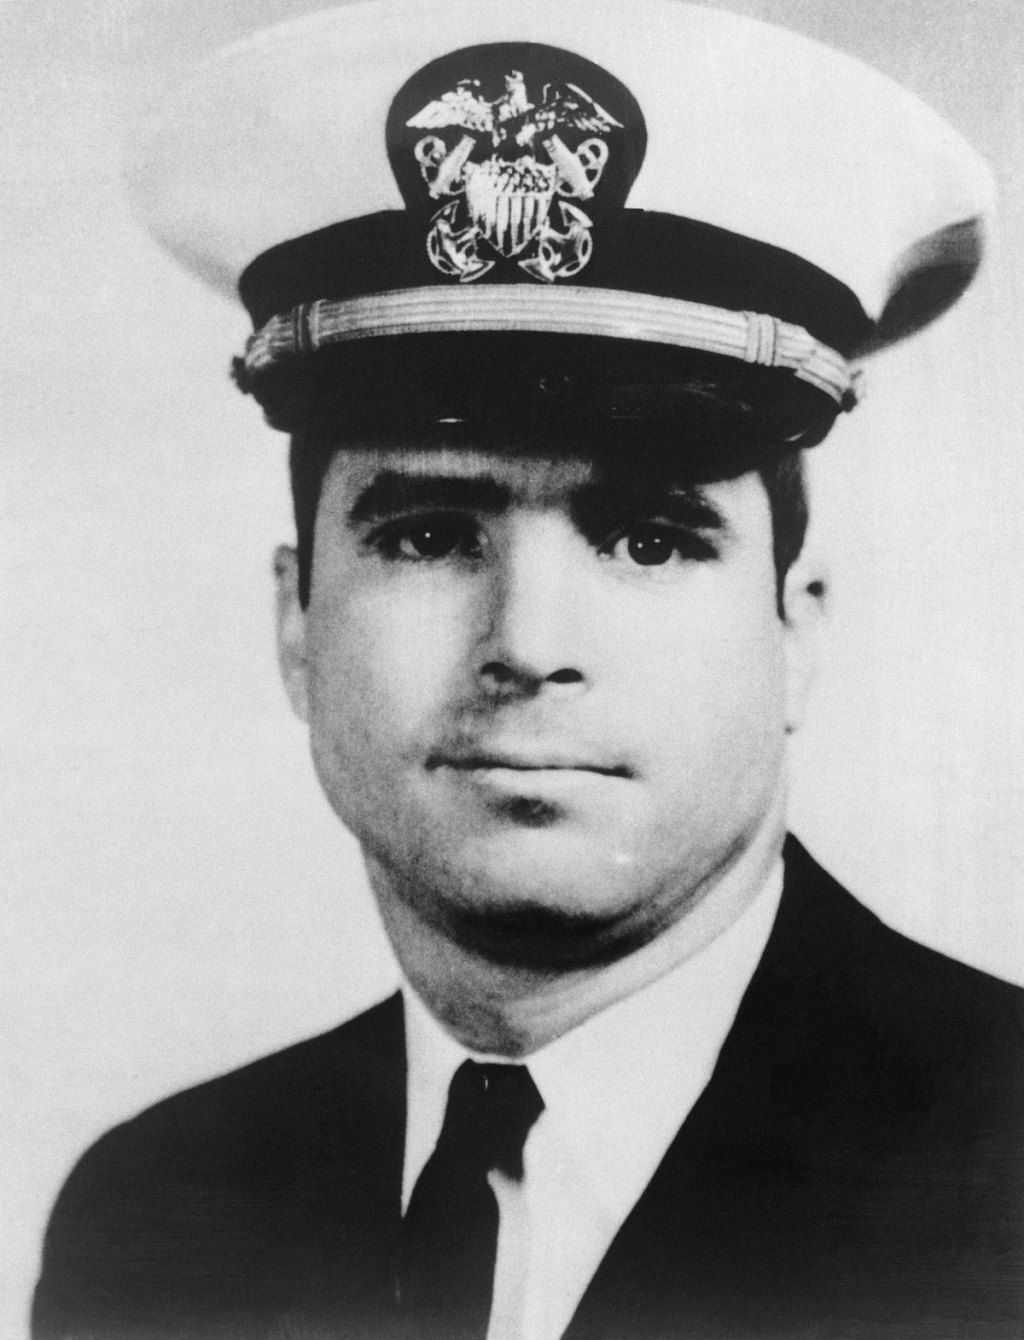 McCain during his years in the military.